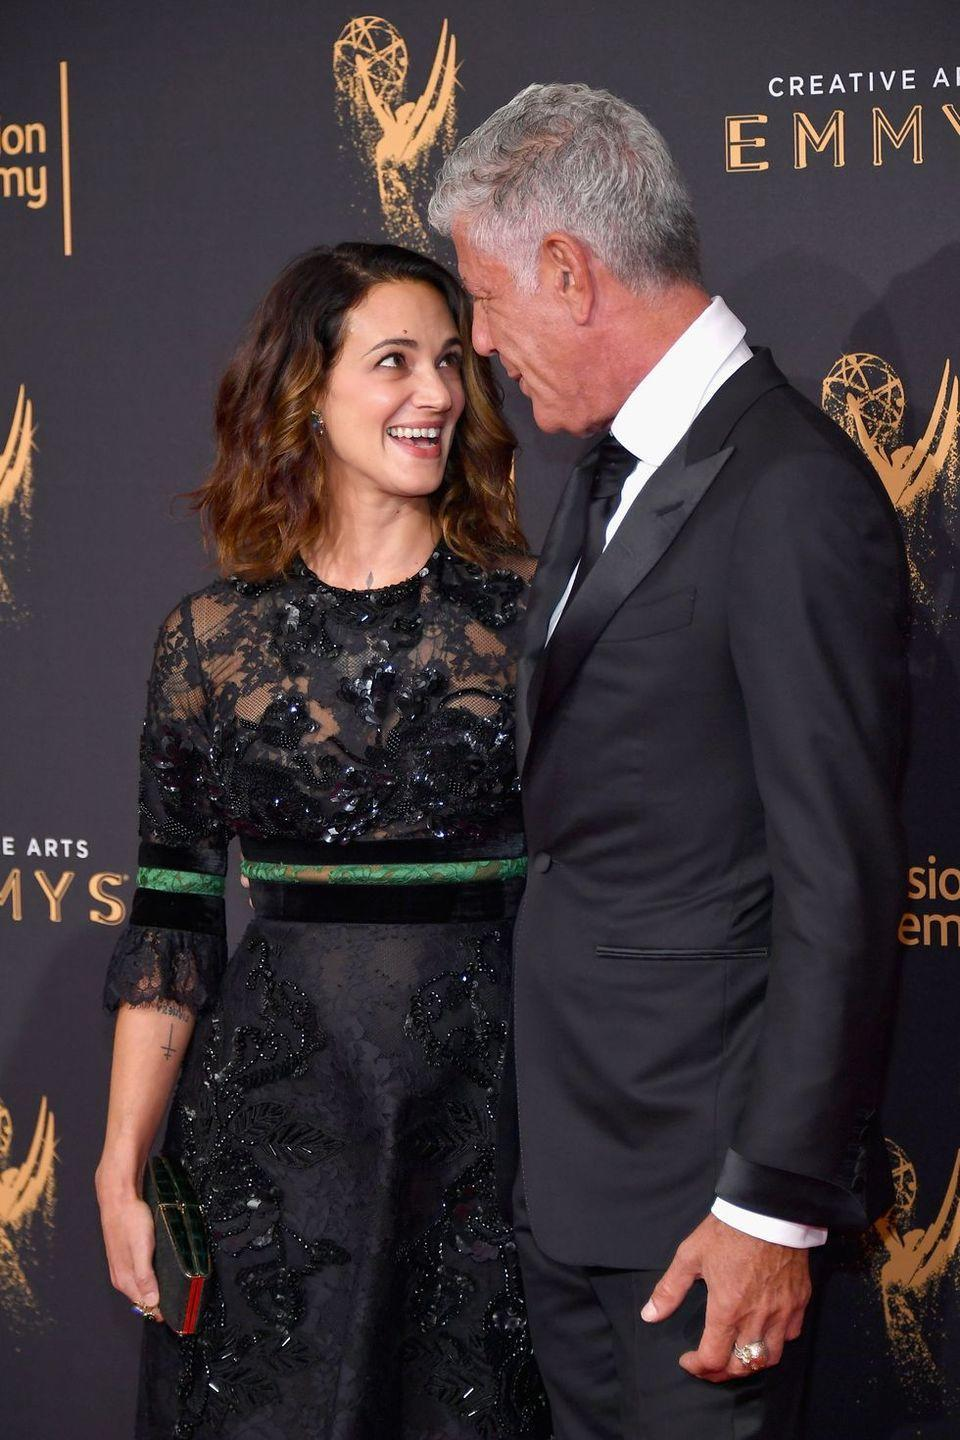 """<p>Bourdain <a href=""""https://www.delish.com/restaurants/g19500653/anthony-bourdain-girlfriend"""" rel=""""nofollow noopener"""" target=""""_blank"""" data-ylk=""""slk:began dating actress and director Asia Argento"""" class=""""link rapid-noclick-resp"""">began dating actress and director Asia Argento</a> in early 2017. In an interview with <a href=""""https://people.com/food/anthony-bourdain-responsibility-to-live-for-daughter-people-interview/"""" rel=""""nofollow noopener"""" target=""""_blank"""" data-ylk=""""slk:PEOPLE"""" class=""""link rapid-noclick-resp"""">PEOPLE</a> earlier this year, Bourdain said he was """"happy in ways that I have not been in memory,"""" and """"happy in ways I didn't think I ever would be, for sure,"""" in reference to Argento.</p>"""